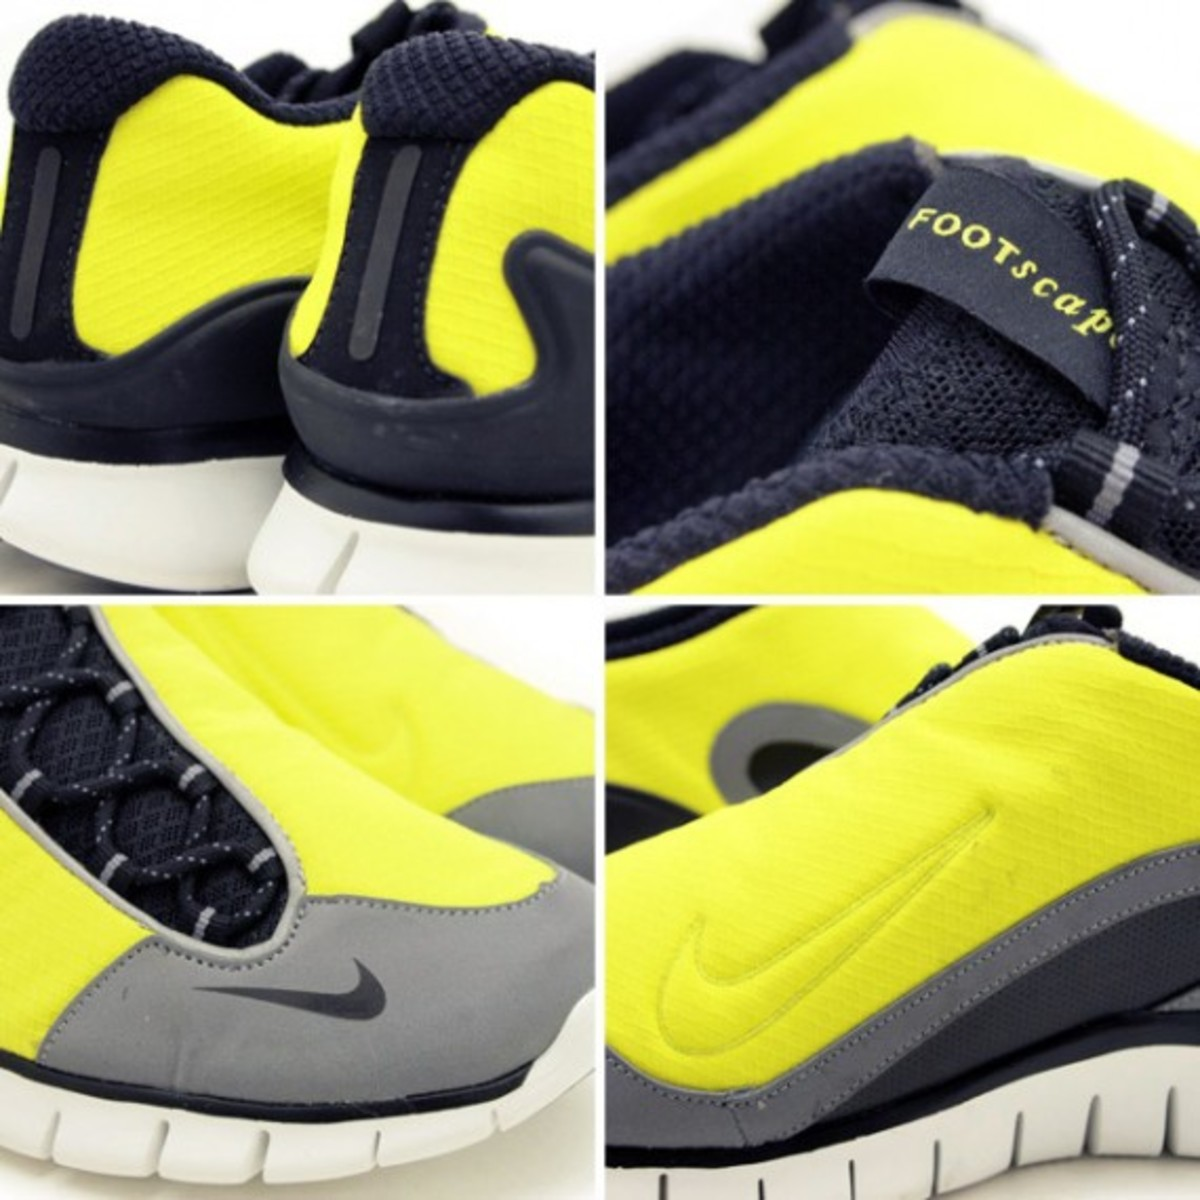 nike-footscape-free-lime-black-grey-03